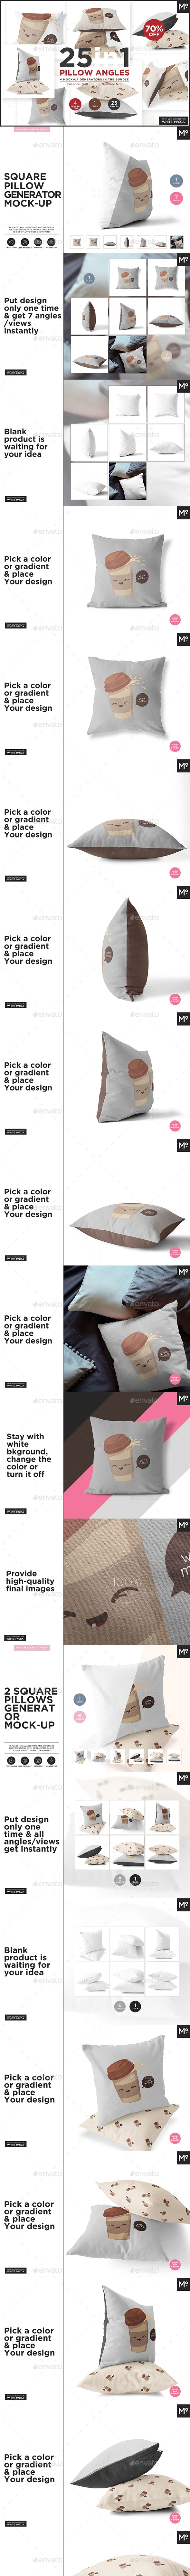 25 in 1 Pillow Angles Mock-up Bundle - Miscellaneous Print